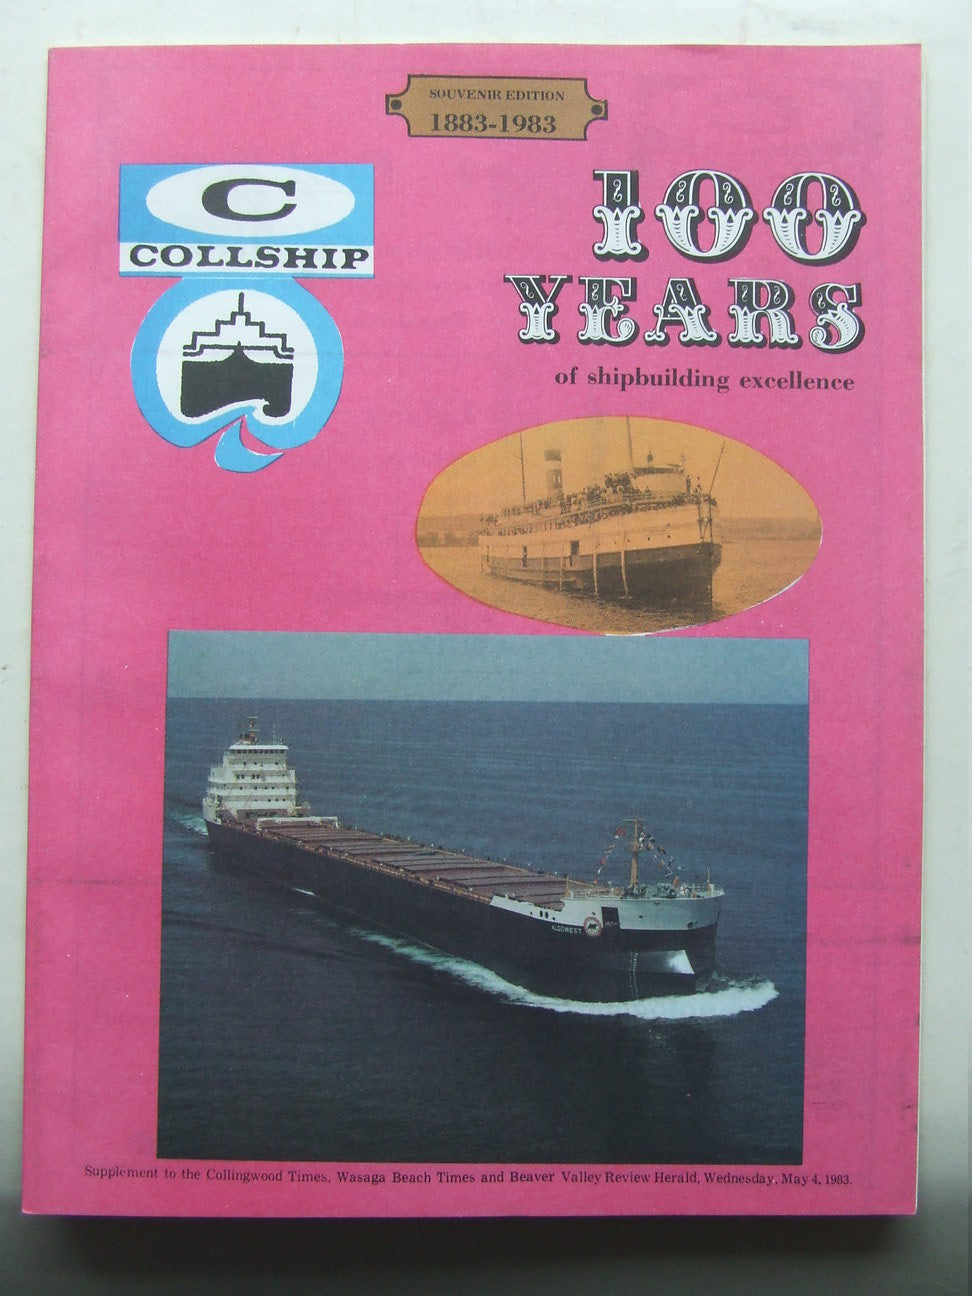 Collship, 100 years of shipbuilding excellence